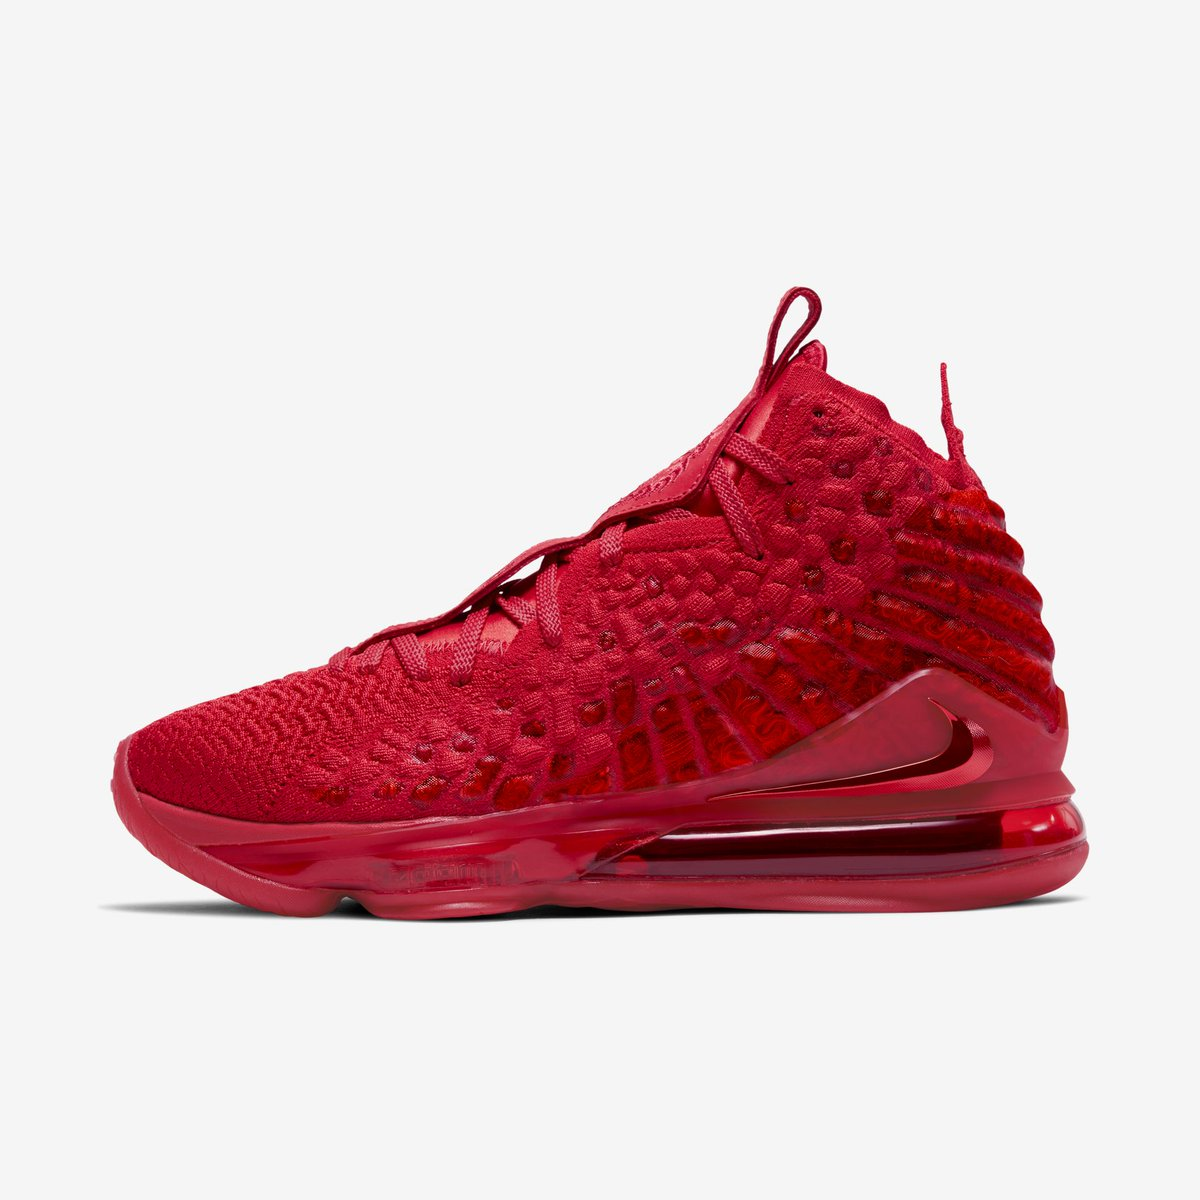 j23 iphone app on twitter lebron 17 red carpet available now jd sports https t co nhh4ucxnlg finish line https t co yqugrsqpeu j23 iphone app on twitter lebron 17